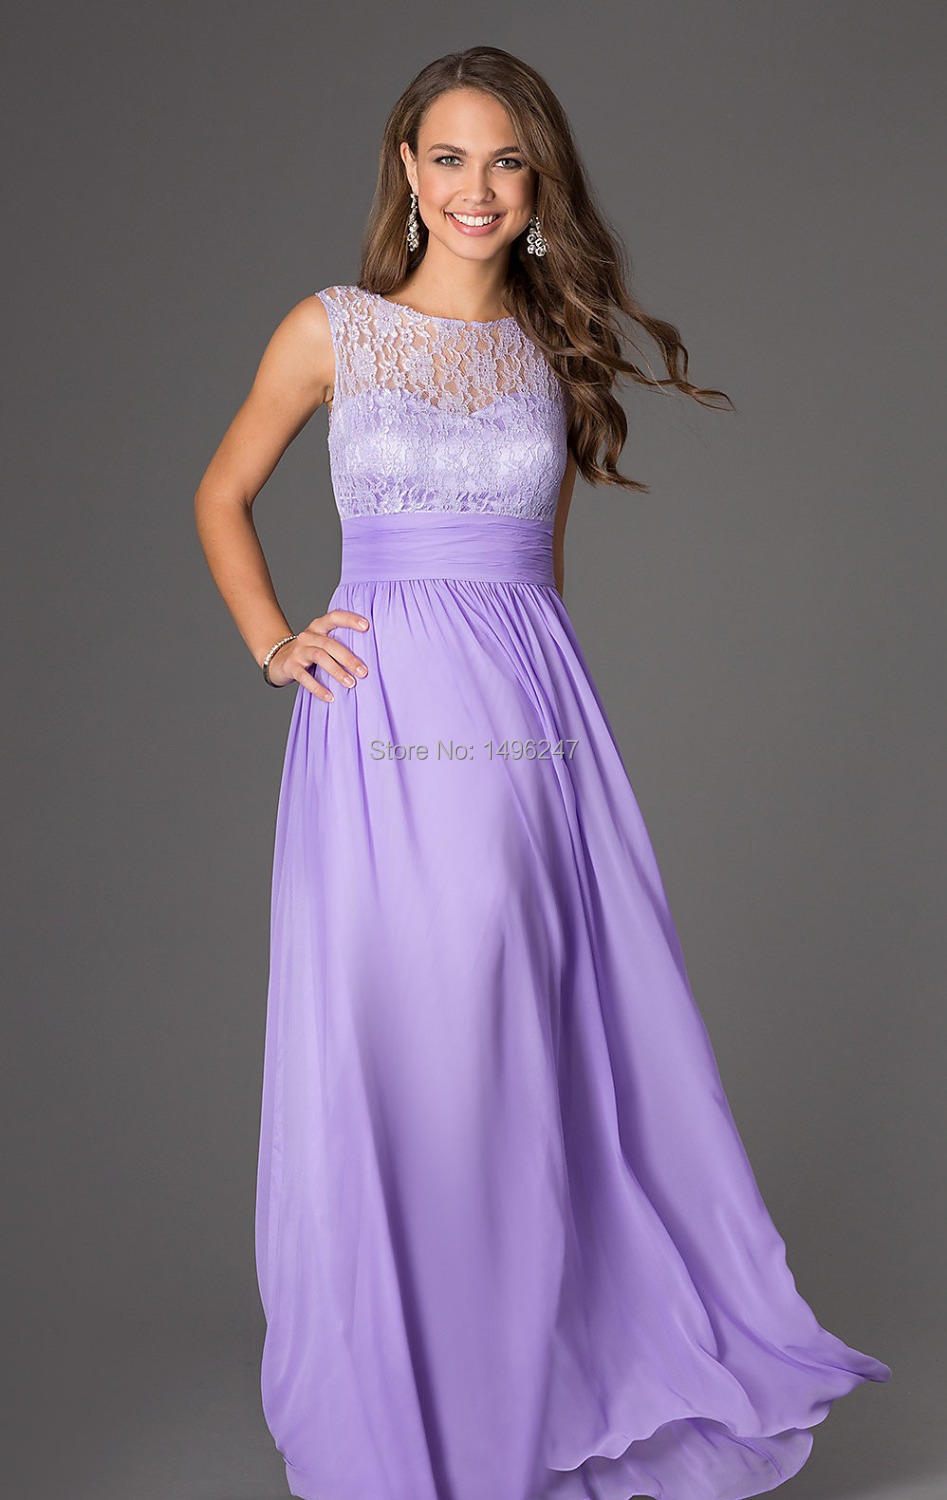 High quality long lavender bridesmaid dress buy cheap long fashionable vintage lavender lace a line long bridesmaid dresses open back see through wedding party gown ombrellifo Gallery